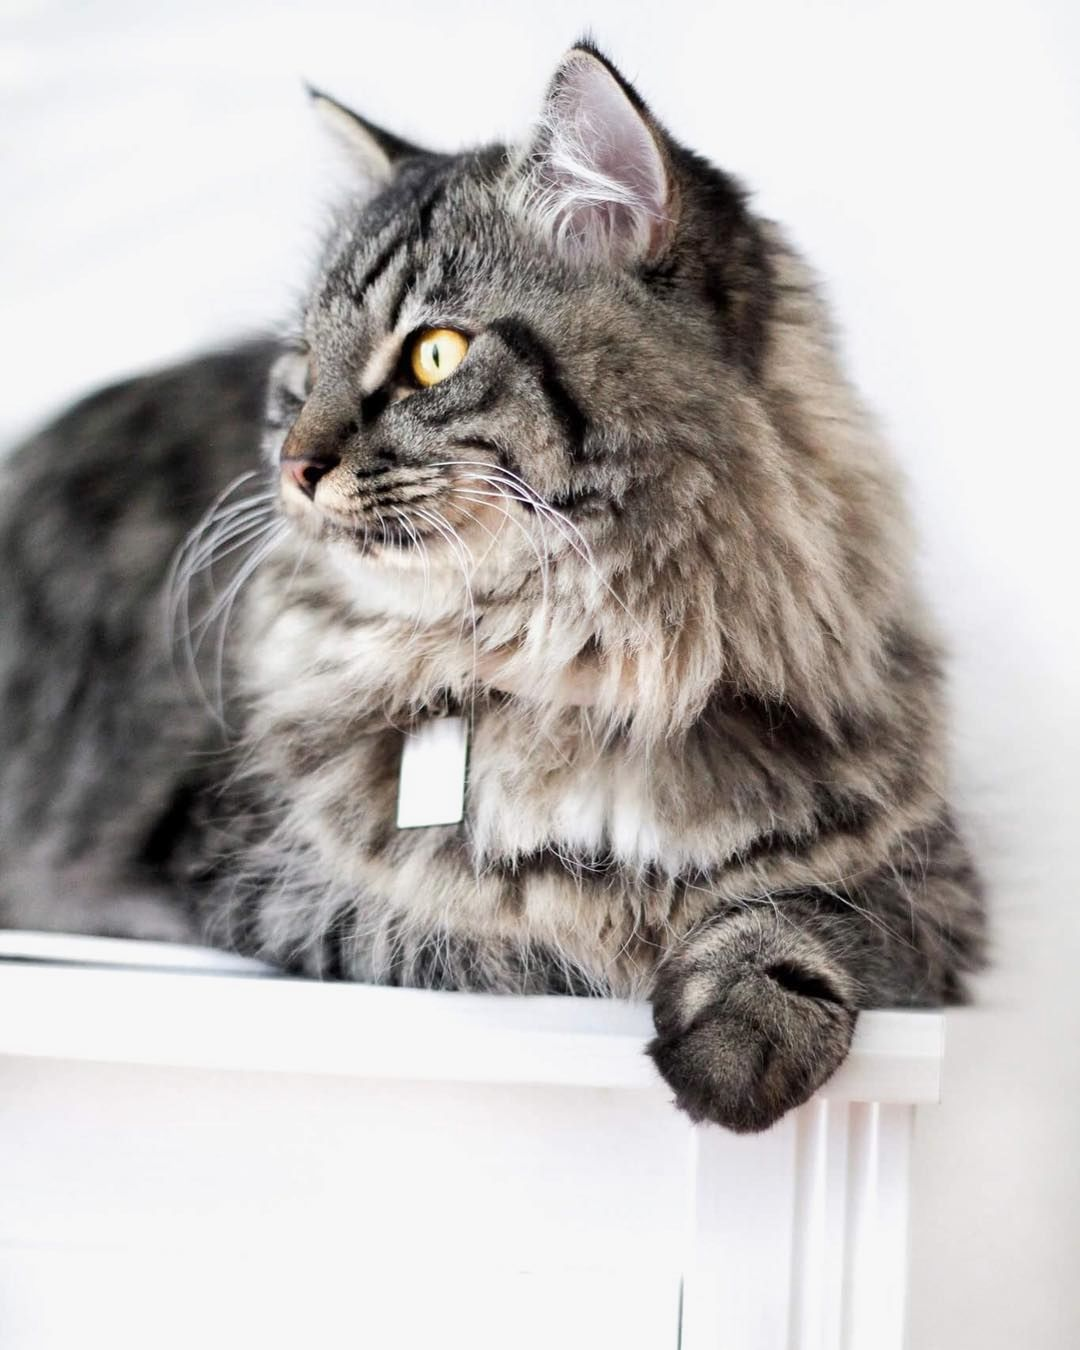 """""""Watching the birds outsideOne of my favorite things to do"""" . credit: @mainecoon_ho . CB Cats features the most adorable cats and kittens. Keep an eye on our website [link in the bio] for your daily share of cuteness. . . . Make sure to check out our cat-themed products at www.cmonstore.com"""